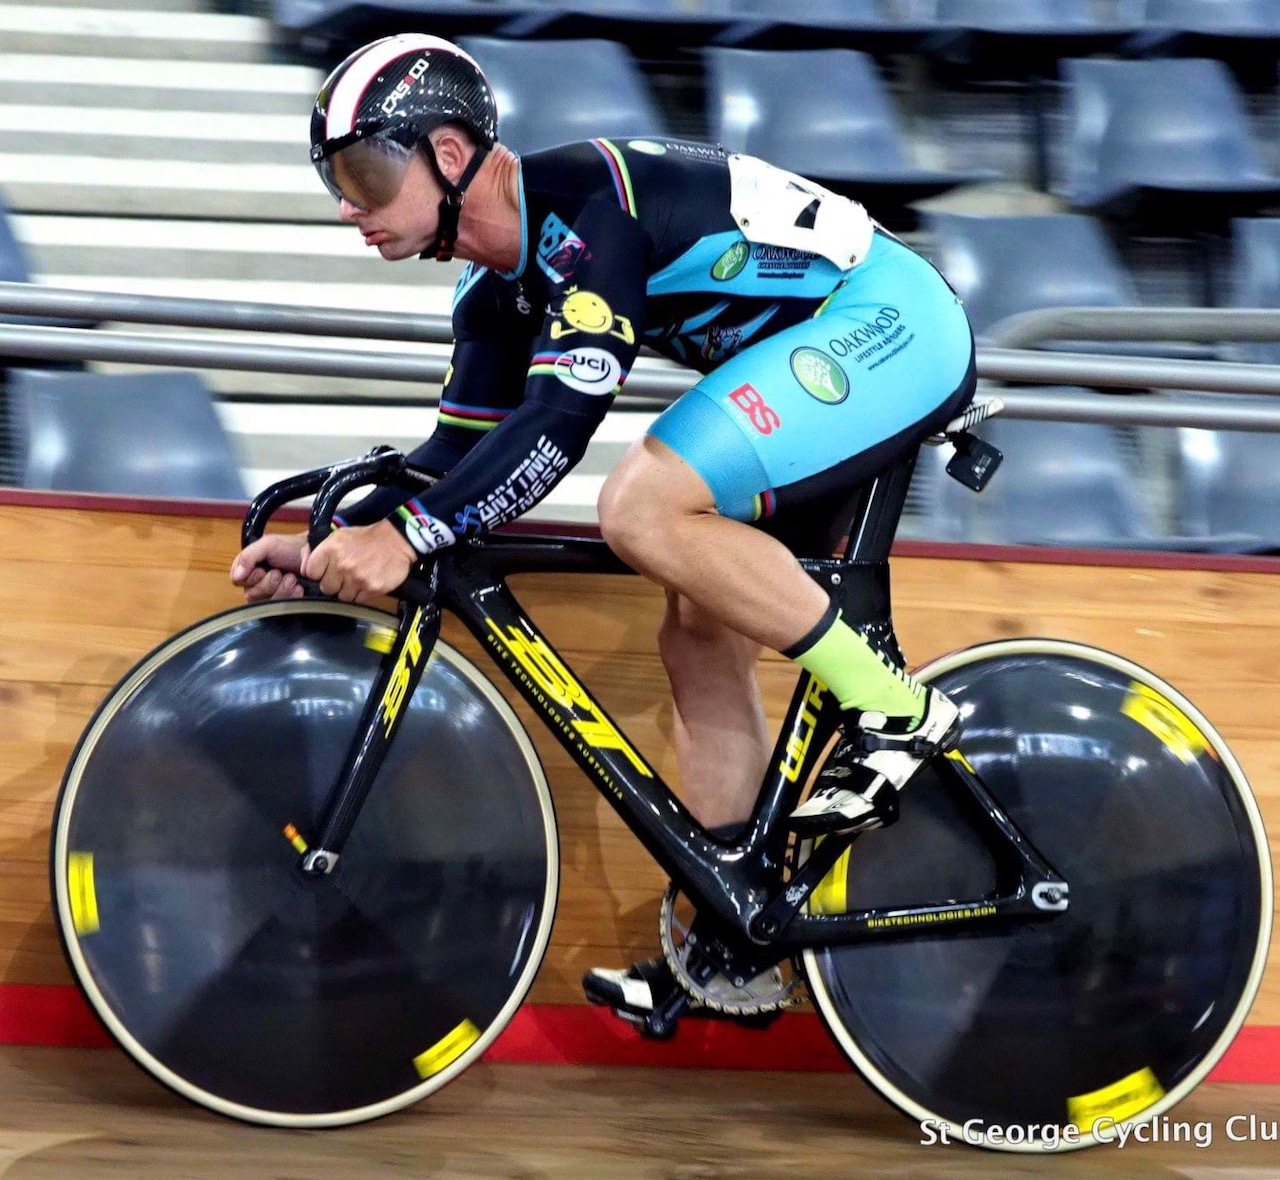 UCI Masters Track Cycling World Championships (Los Angeles) - Mike Smith (BiciSport) will be in action from October 6-13